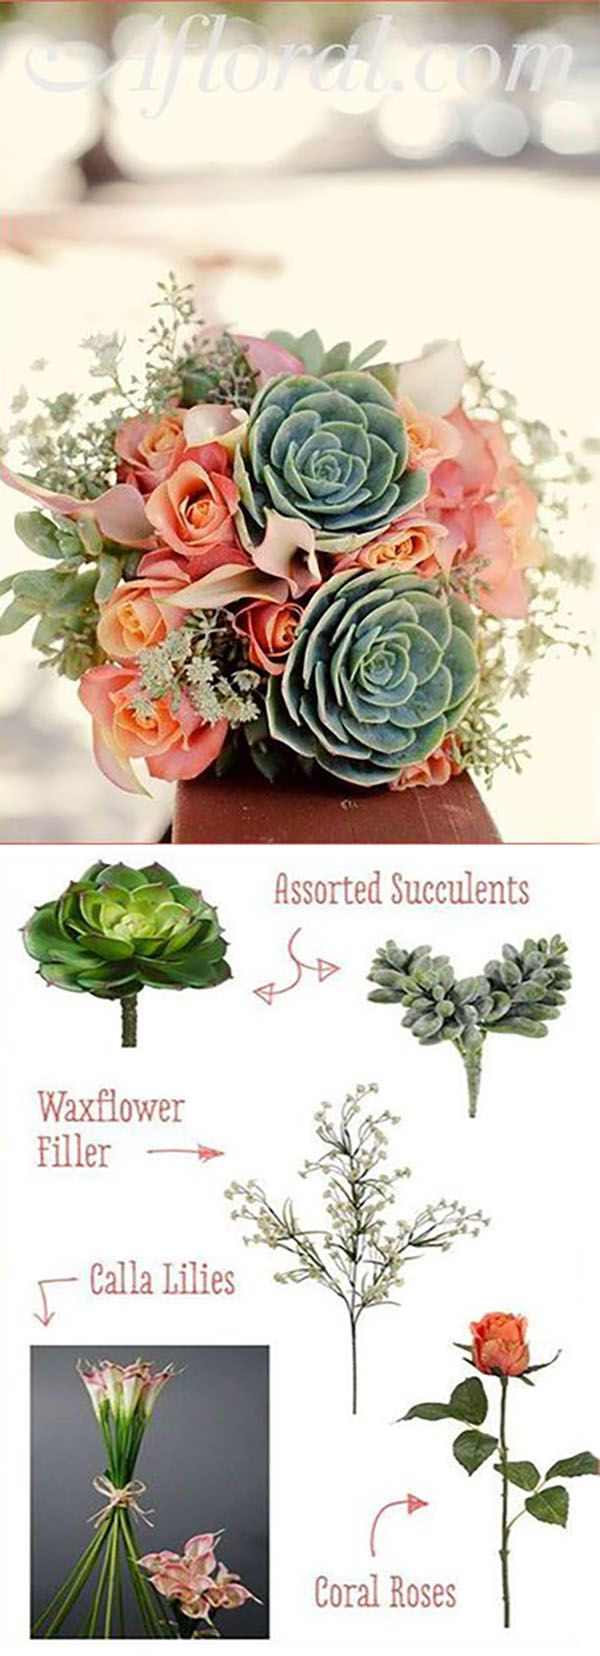 Mejores 35 imgenes de wildflower en pinterest arreglos florales fill you bohemian wedding with faux succulents and cheap wedding flowers from afloral solutioingenieria Gallery